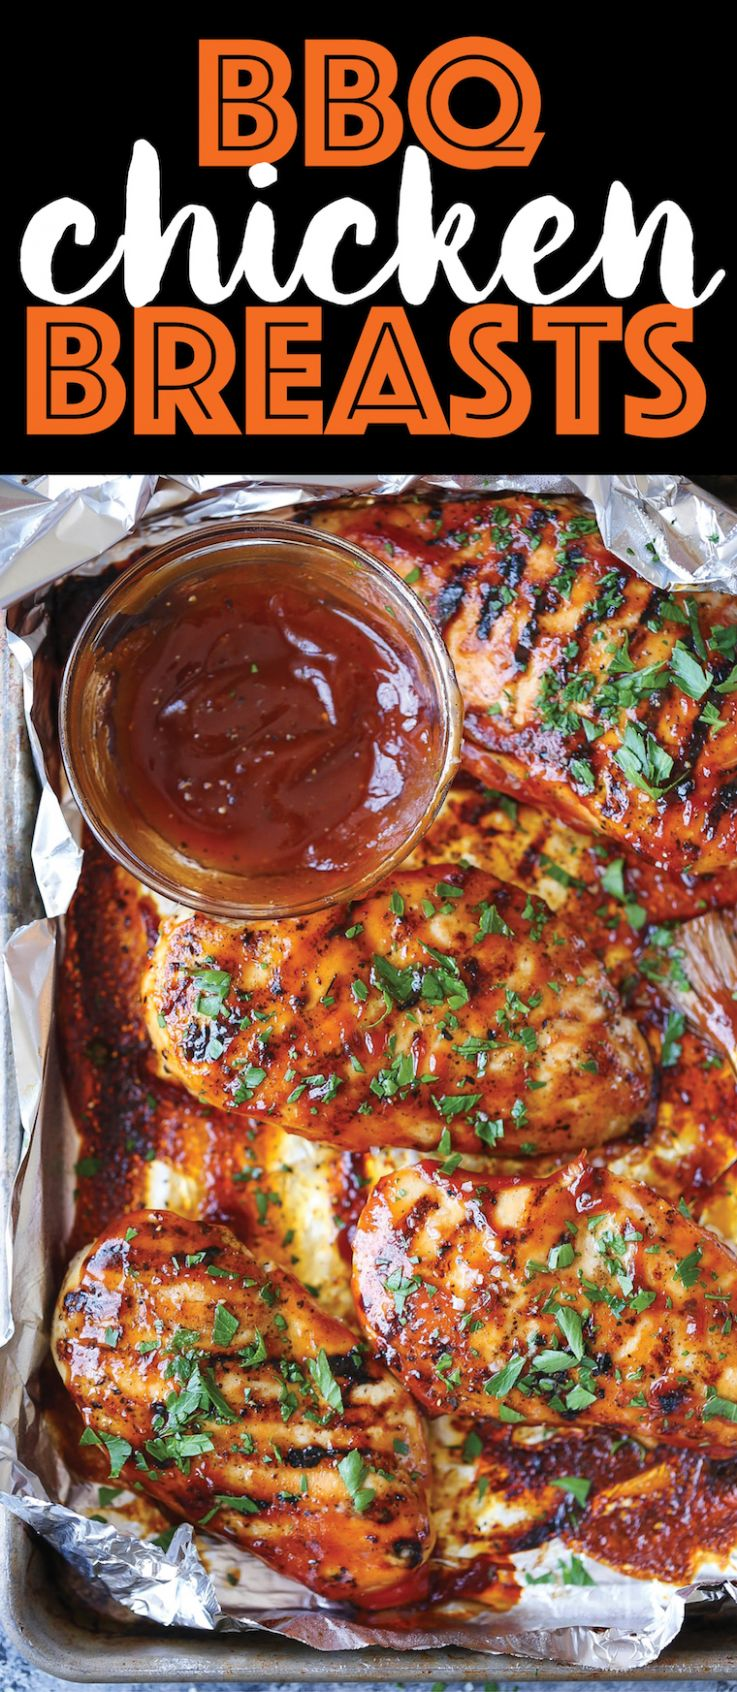 BBQ Chicken Breasts - Damn Delicious